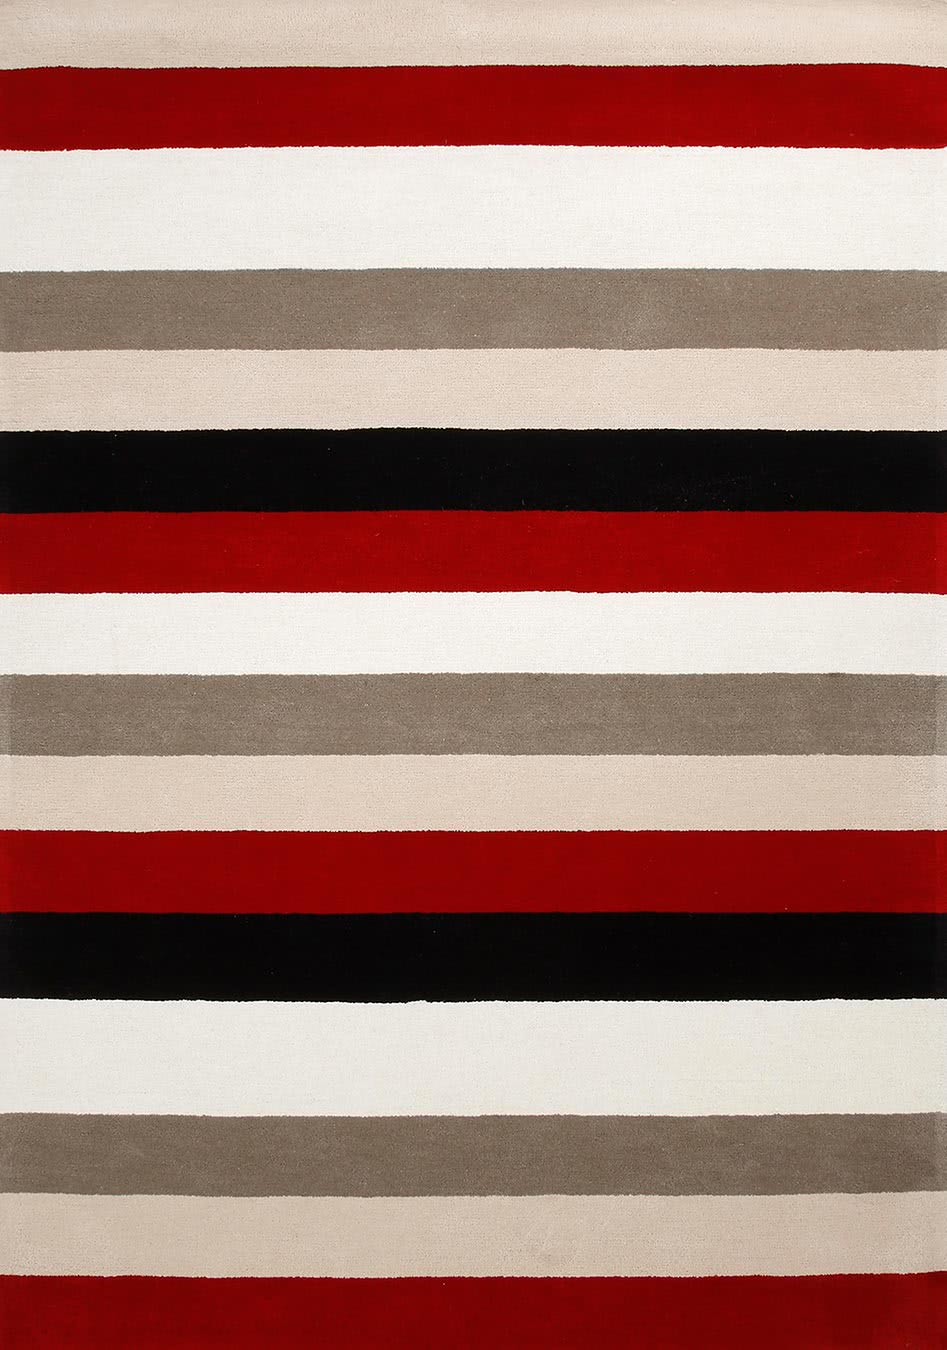 Chicago Stripe rug in red overhead image